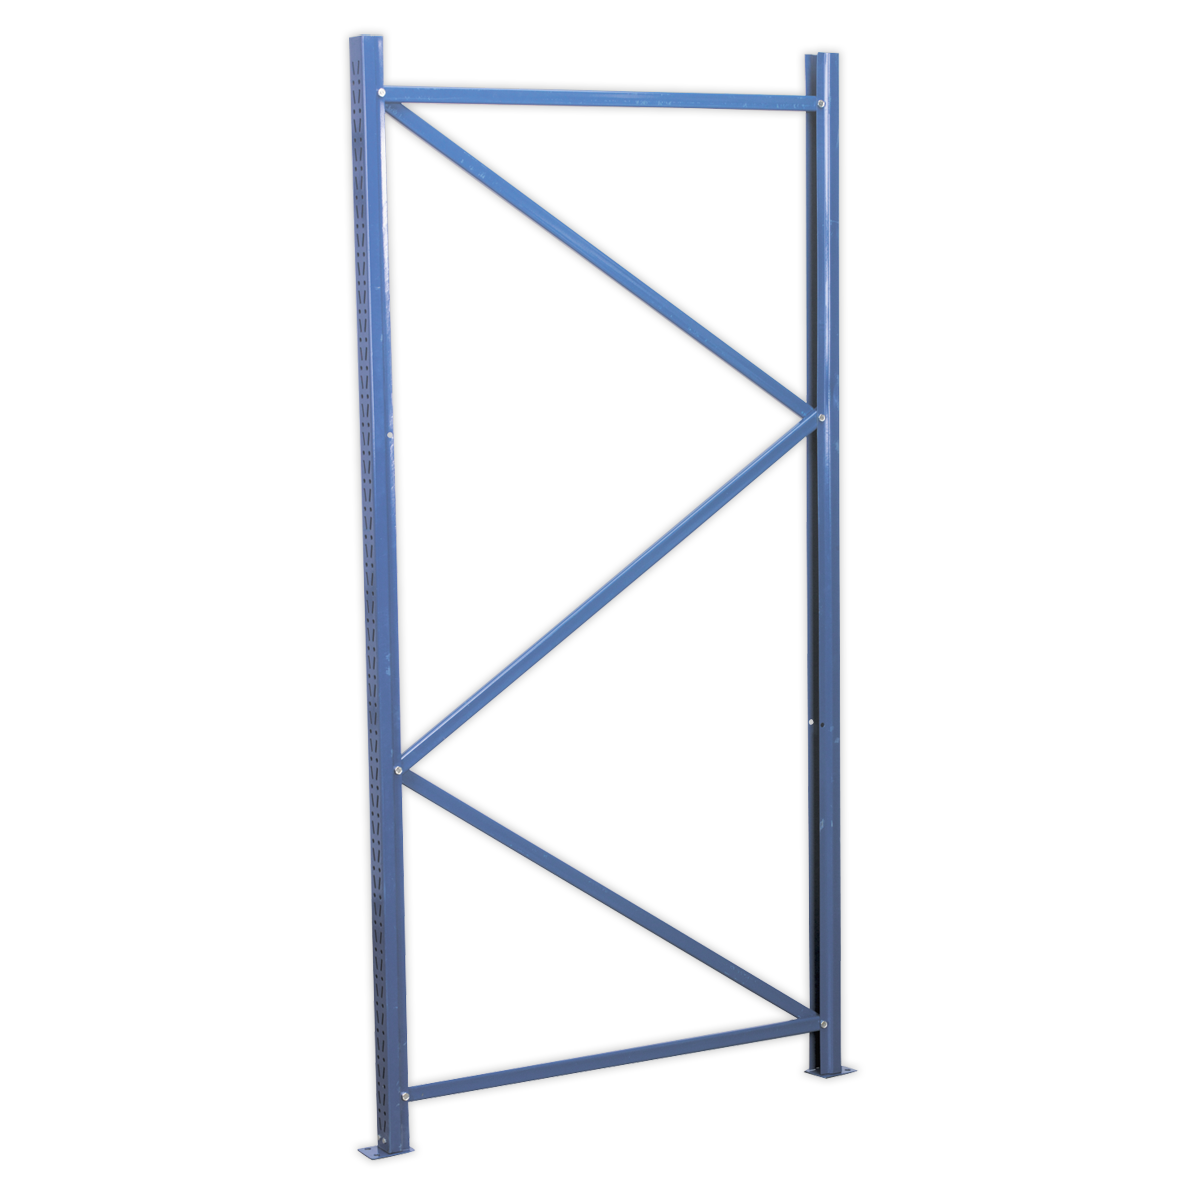 Frame 2000 x 1000mm One End Sealey APR1001 by Sealey